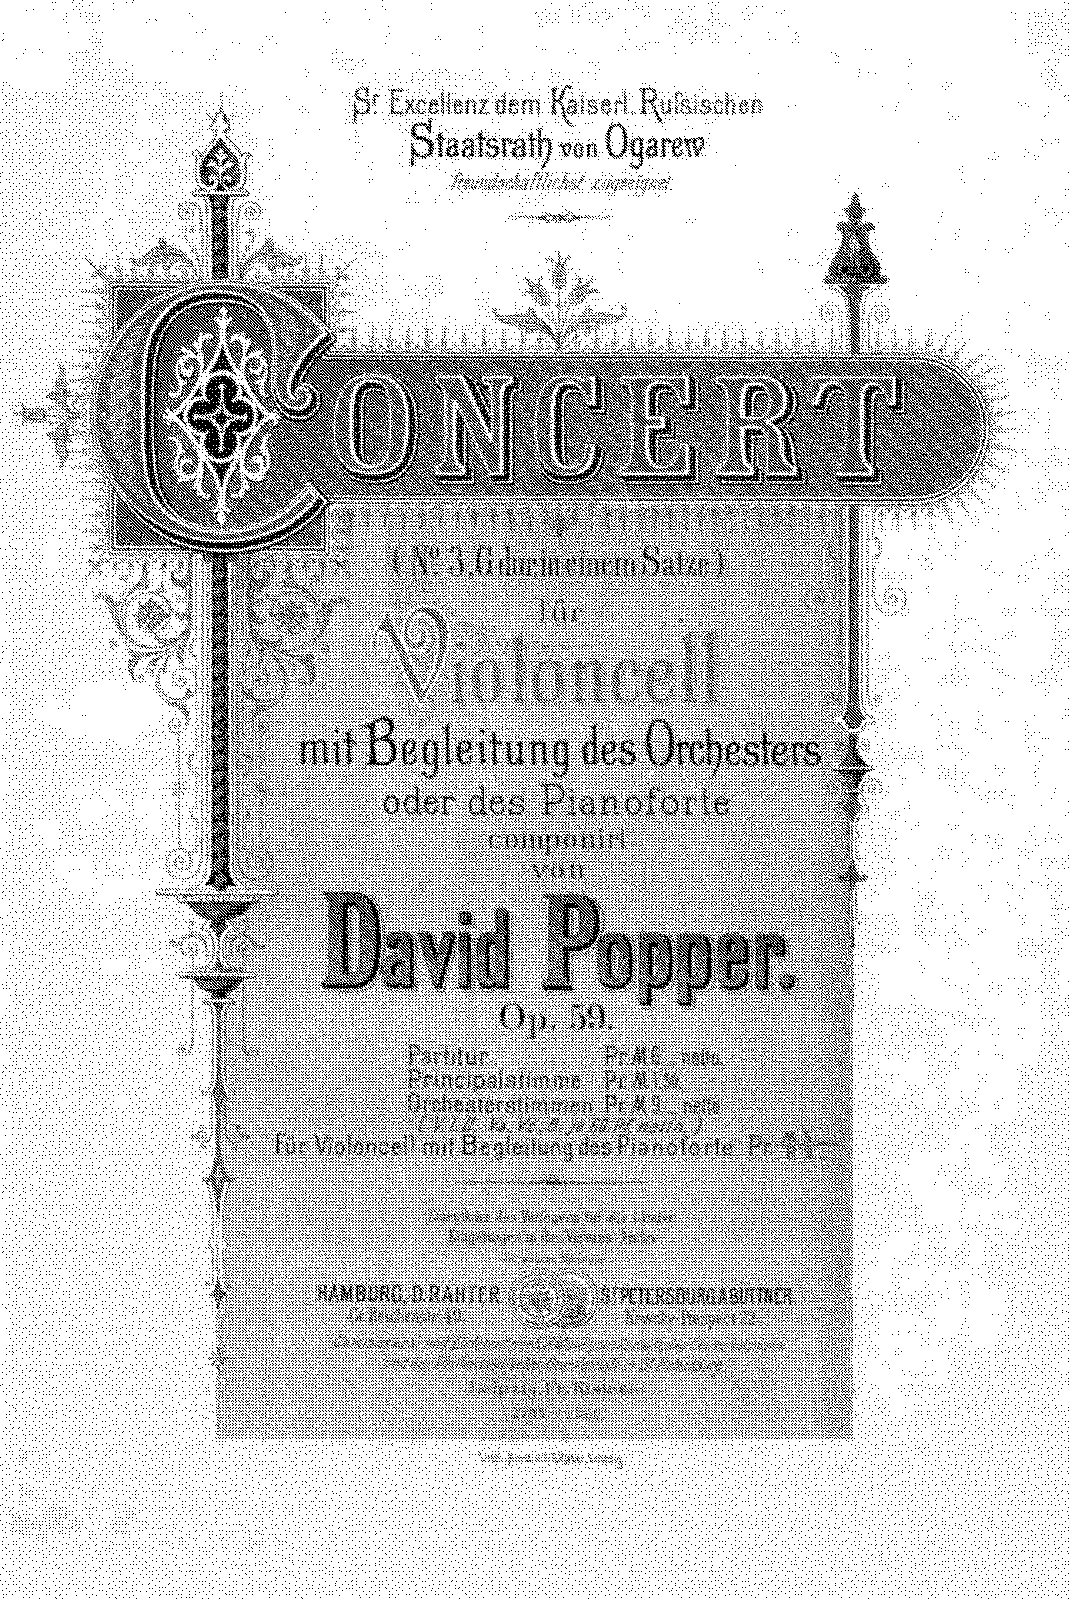 PMLP154660-Popper - Cello Concerto No3 in G (in einem Satze) Op59 full orch score.pdf